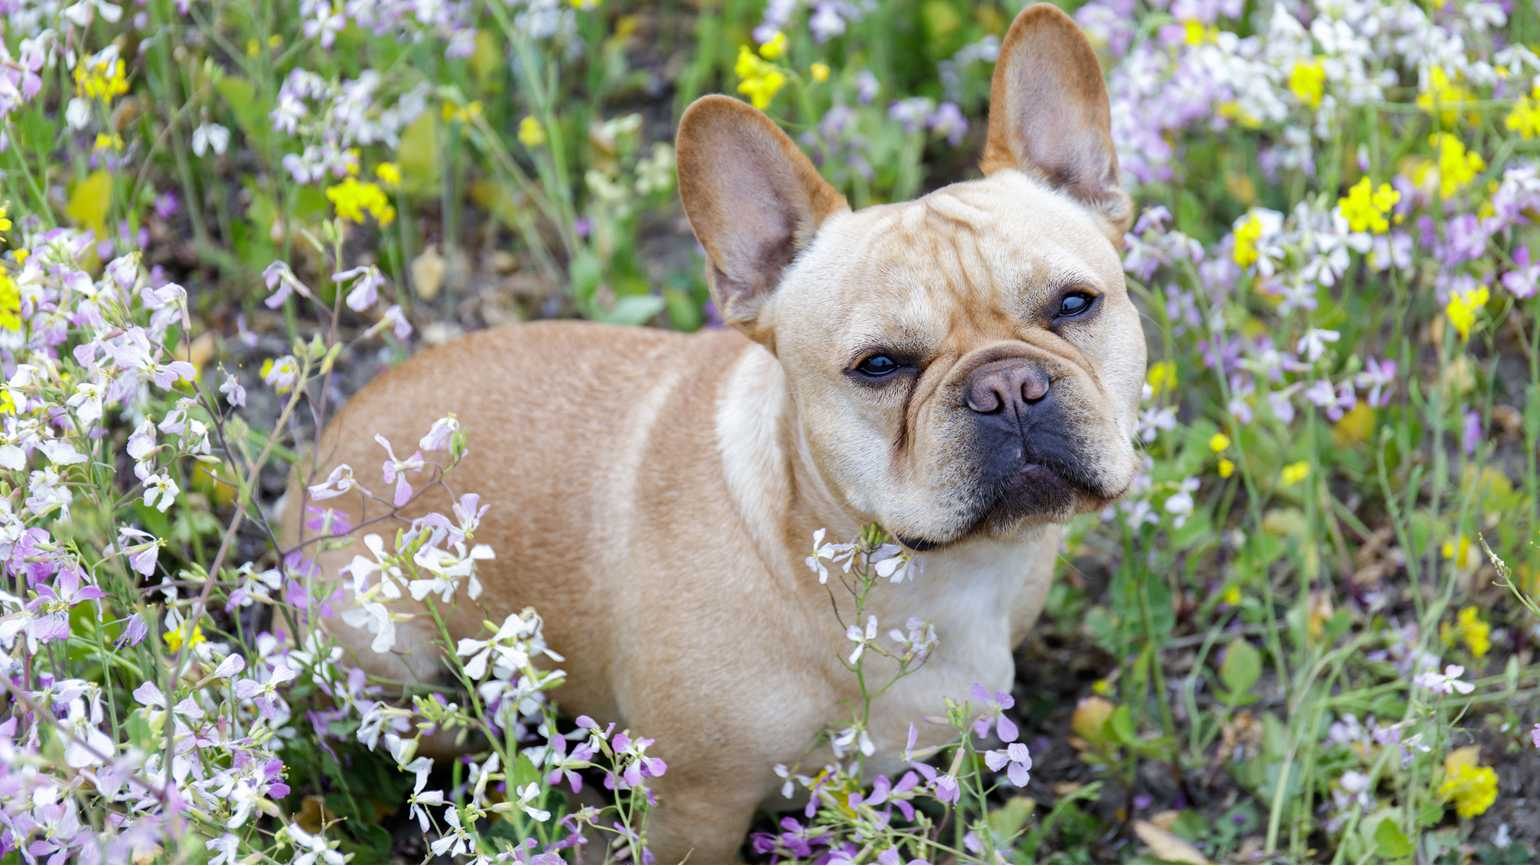 Frenchie sitting in a meadow full of wildflowers in Pescadero, San Mateo County, California, USA.